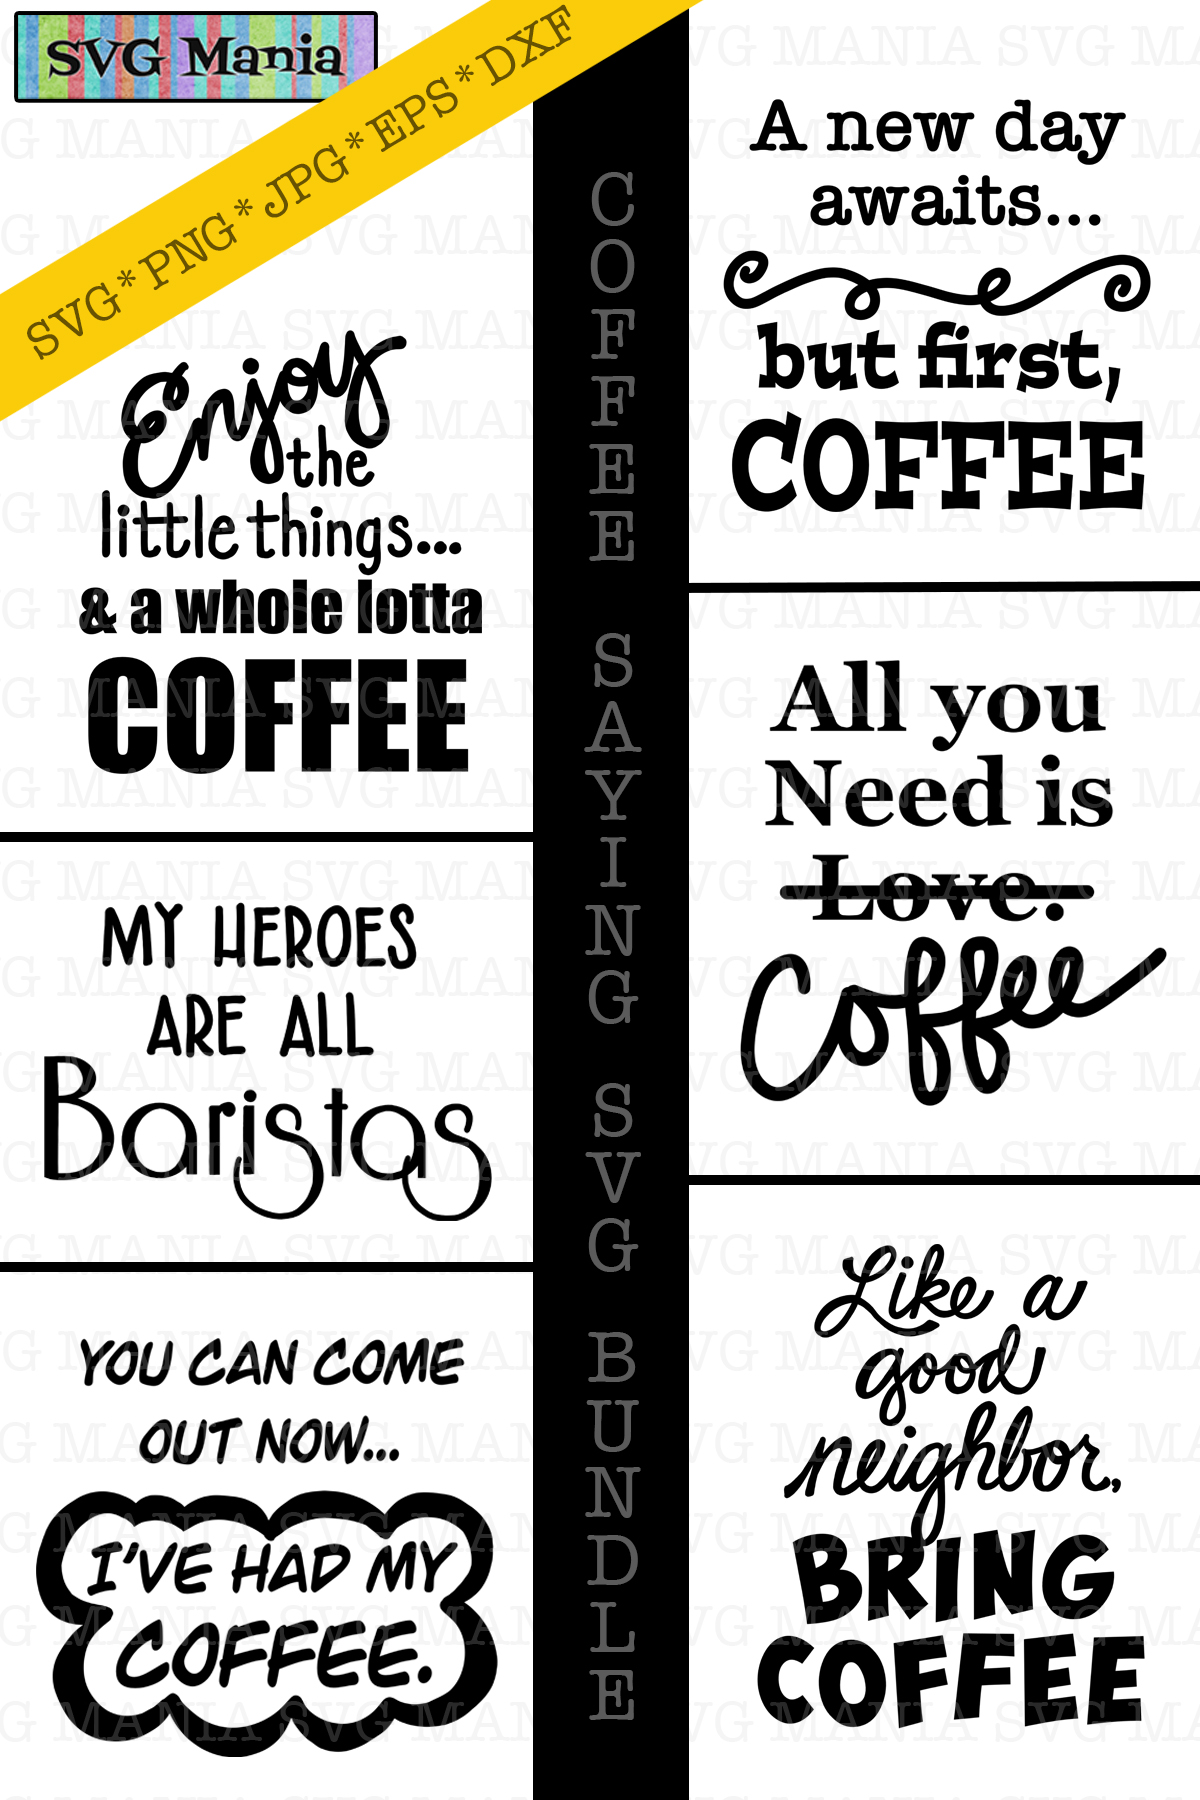 Coffee Saying SVG File Bundle, Funny Coffee SVG Files, SVG example image 2